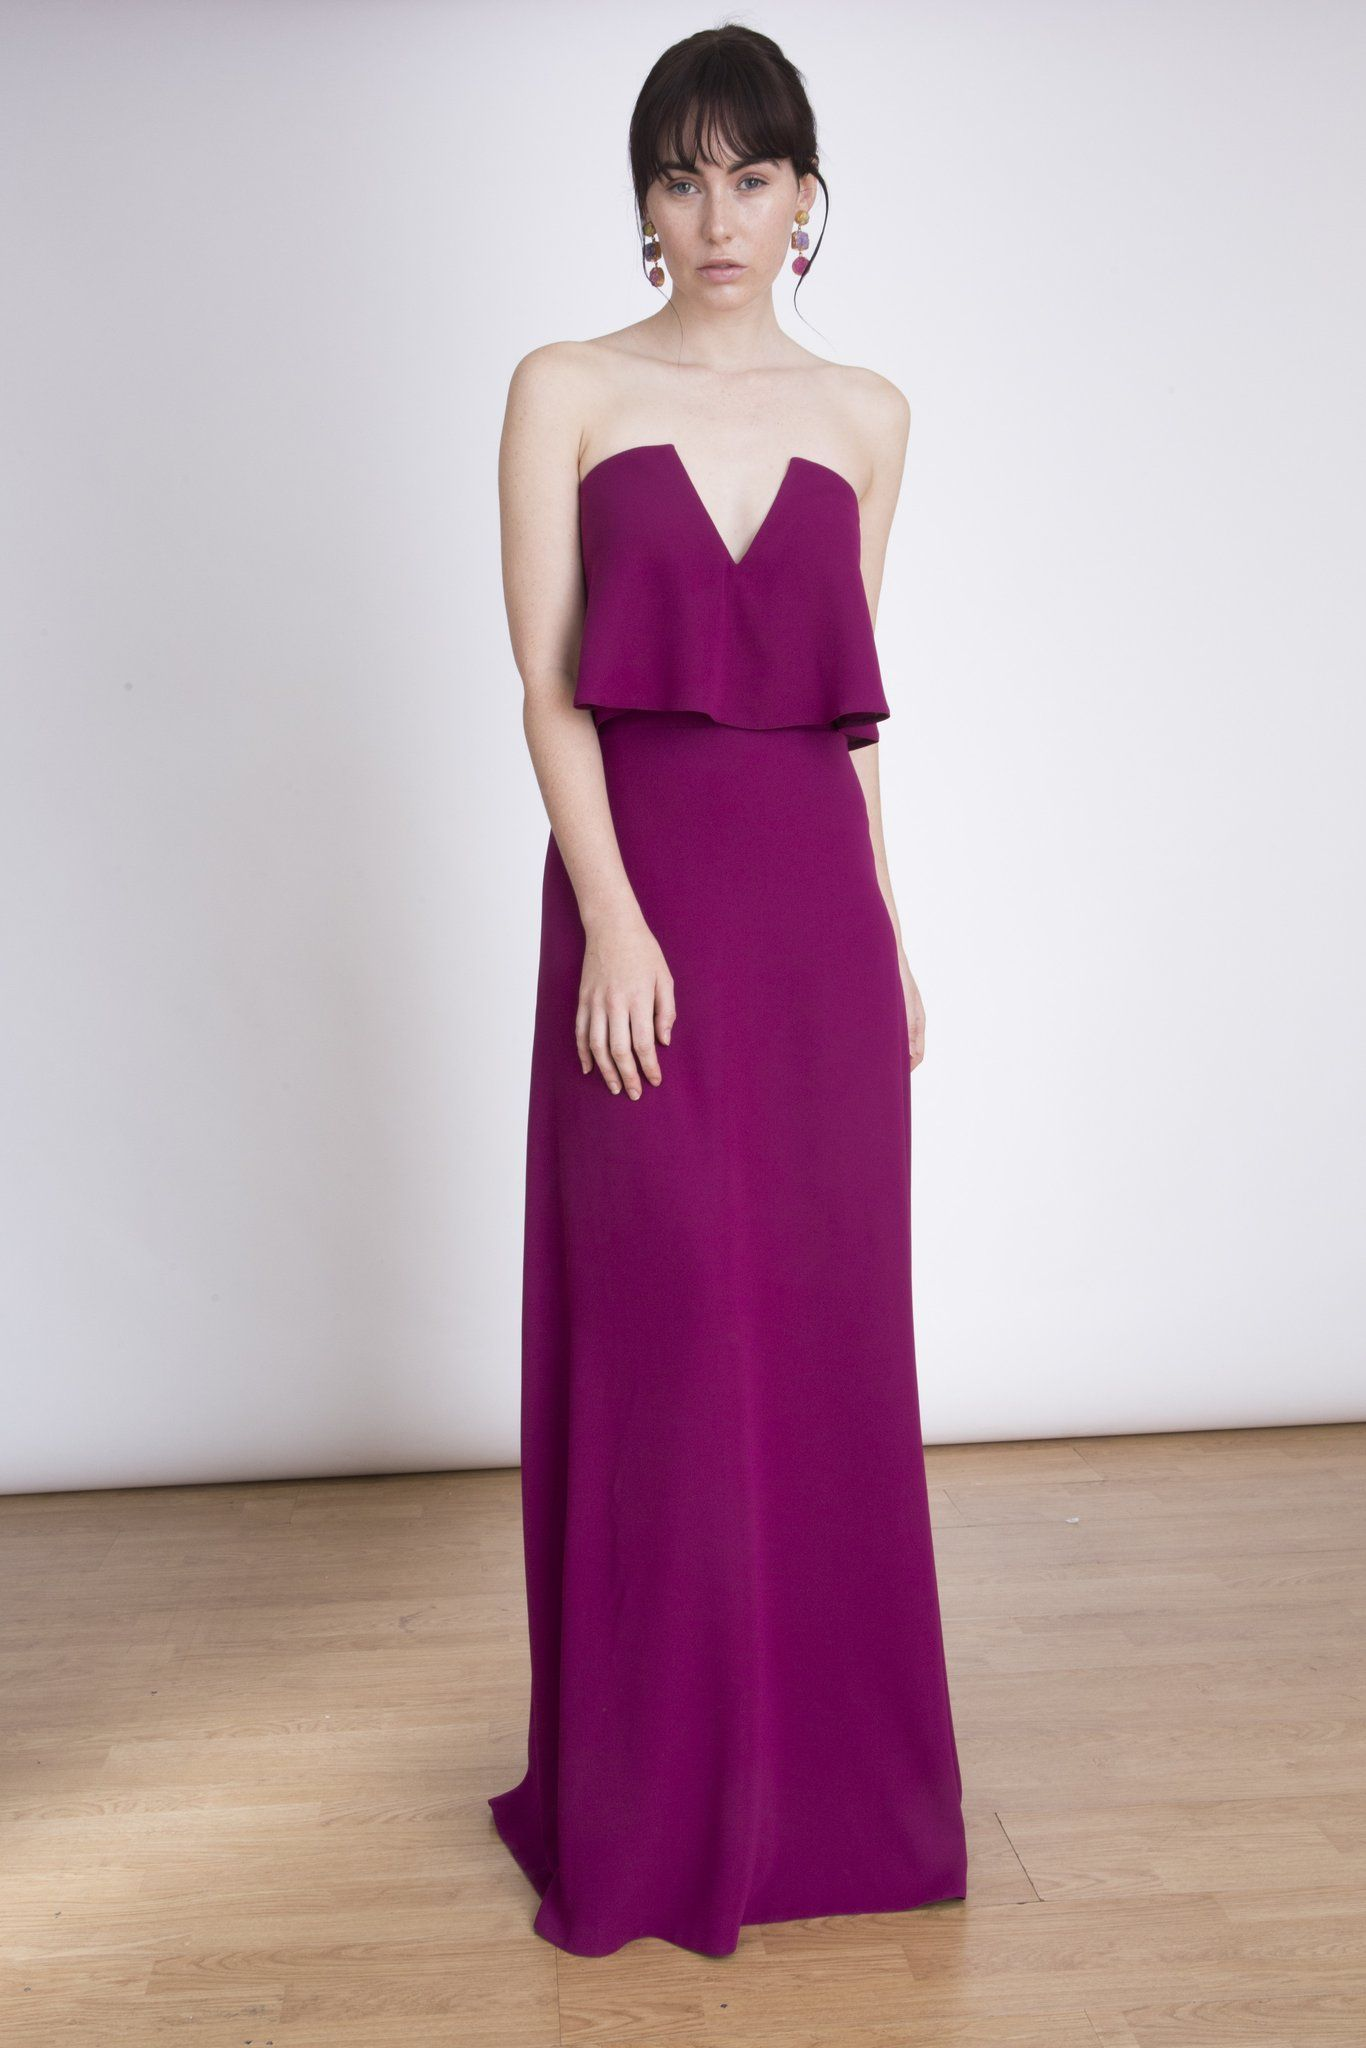 The Amelie Maxi Dress - Strapless Maxi Dress with a ruffle detail ...